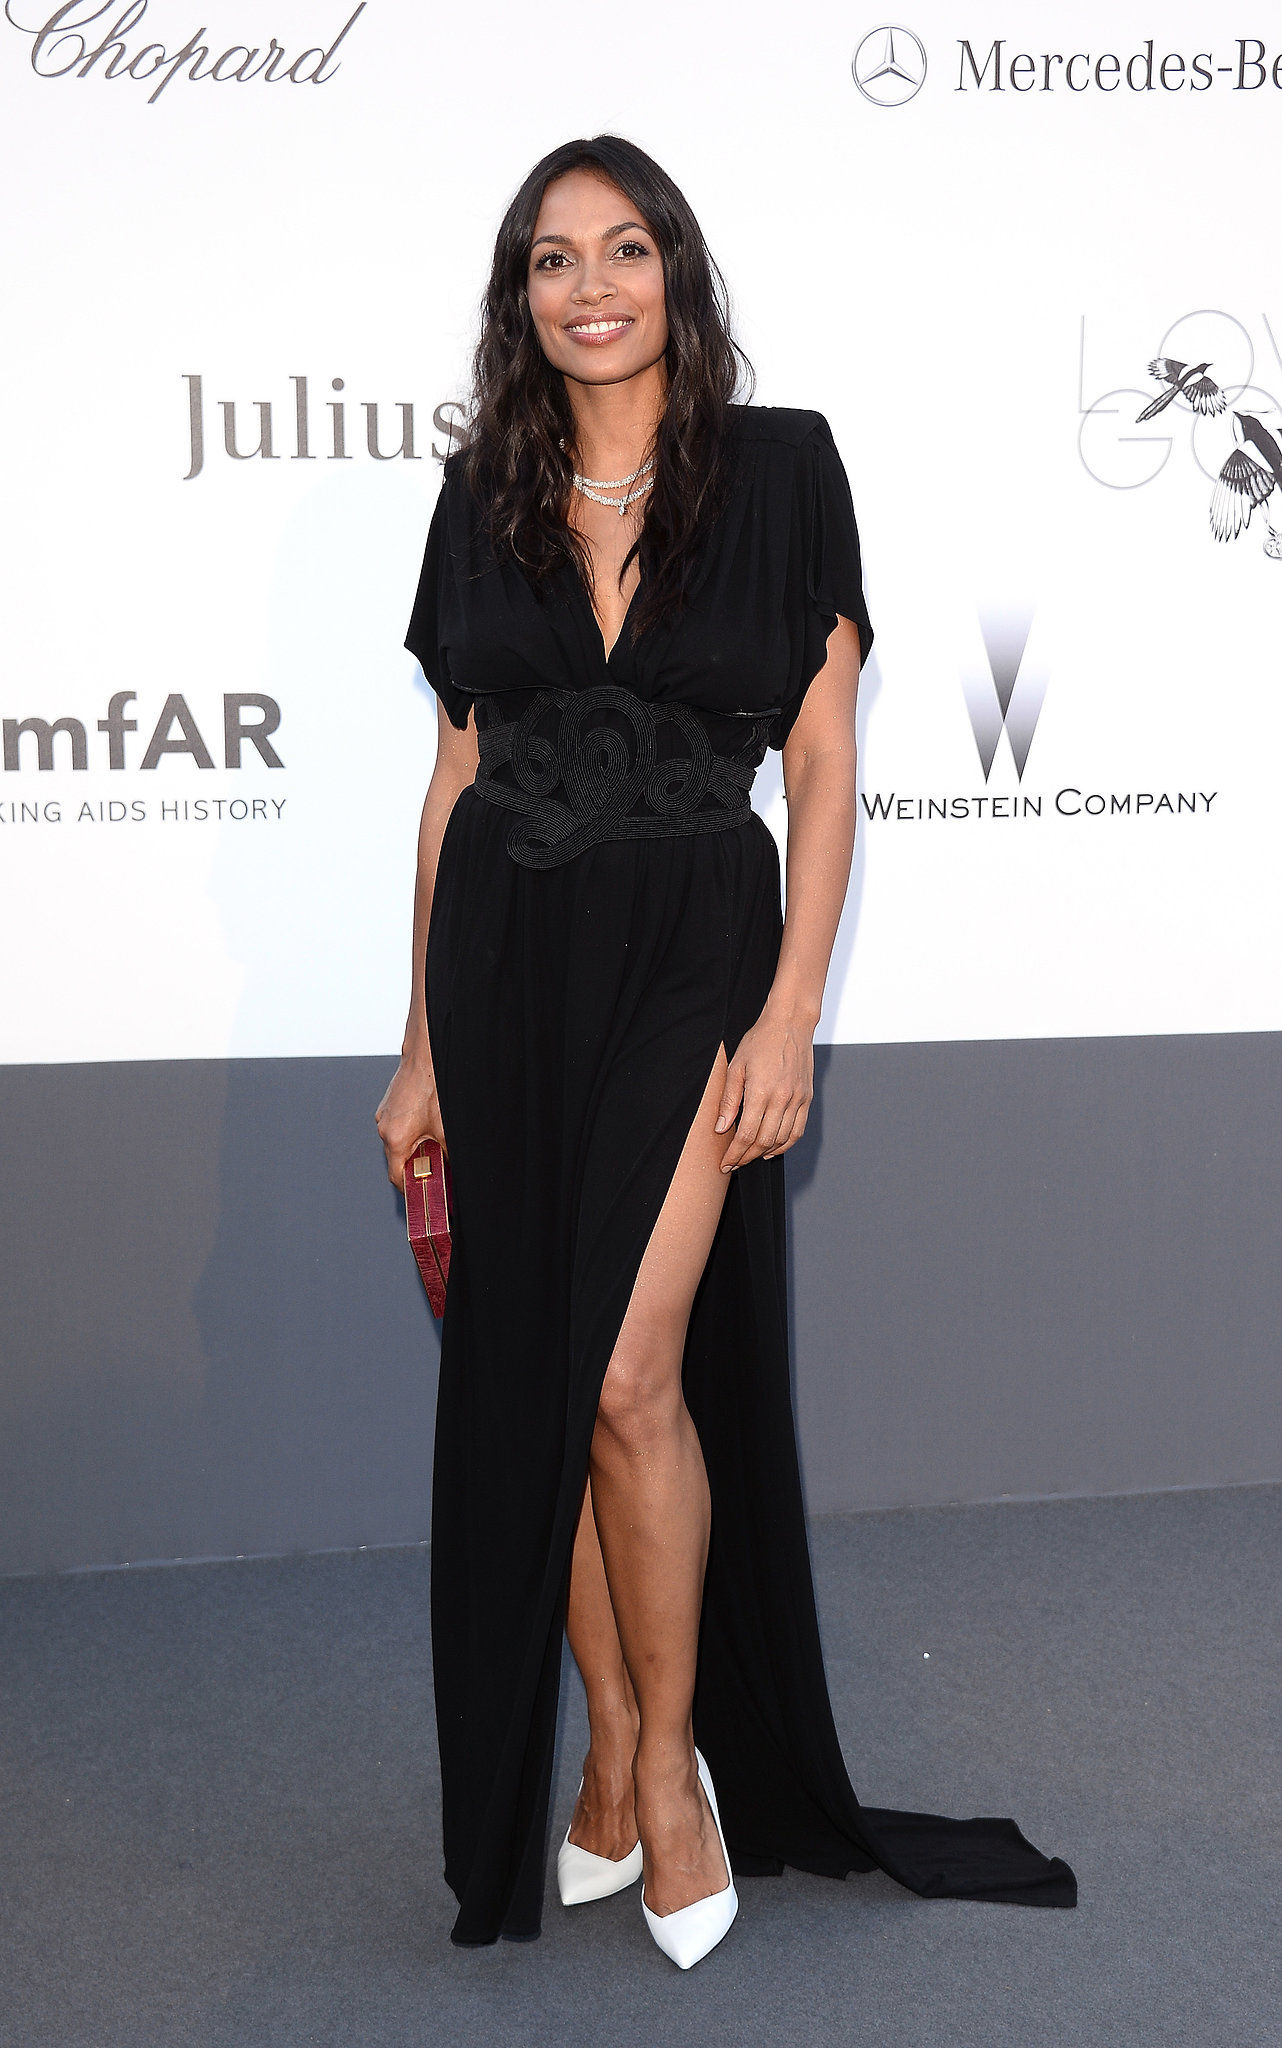 Rosario Dawson showed serious leg on the amfAR red carpet in Cannes on Thursday.